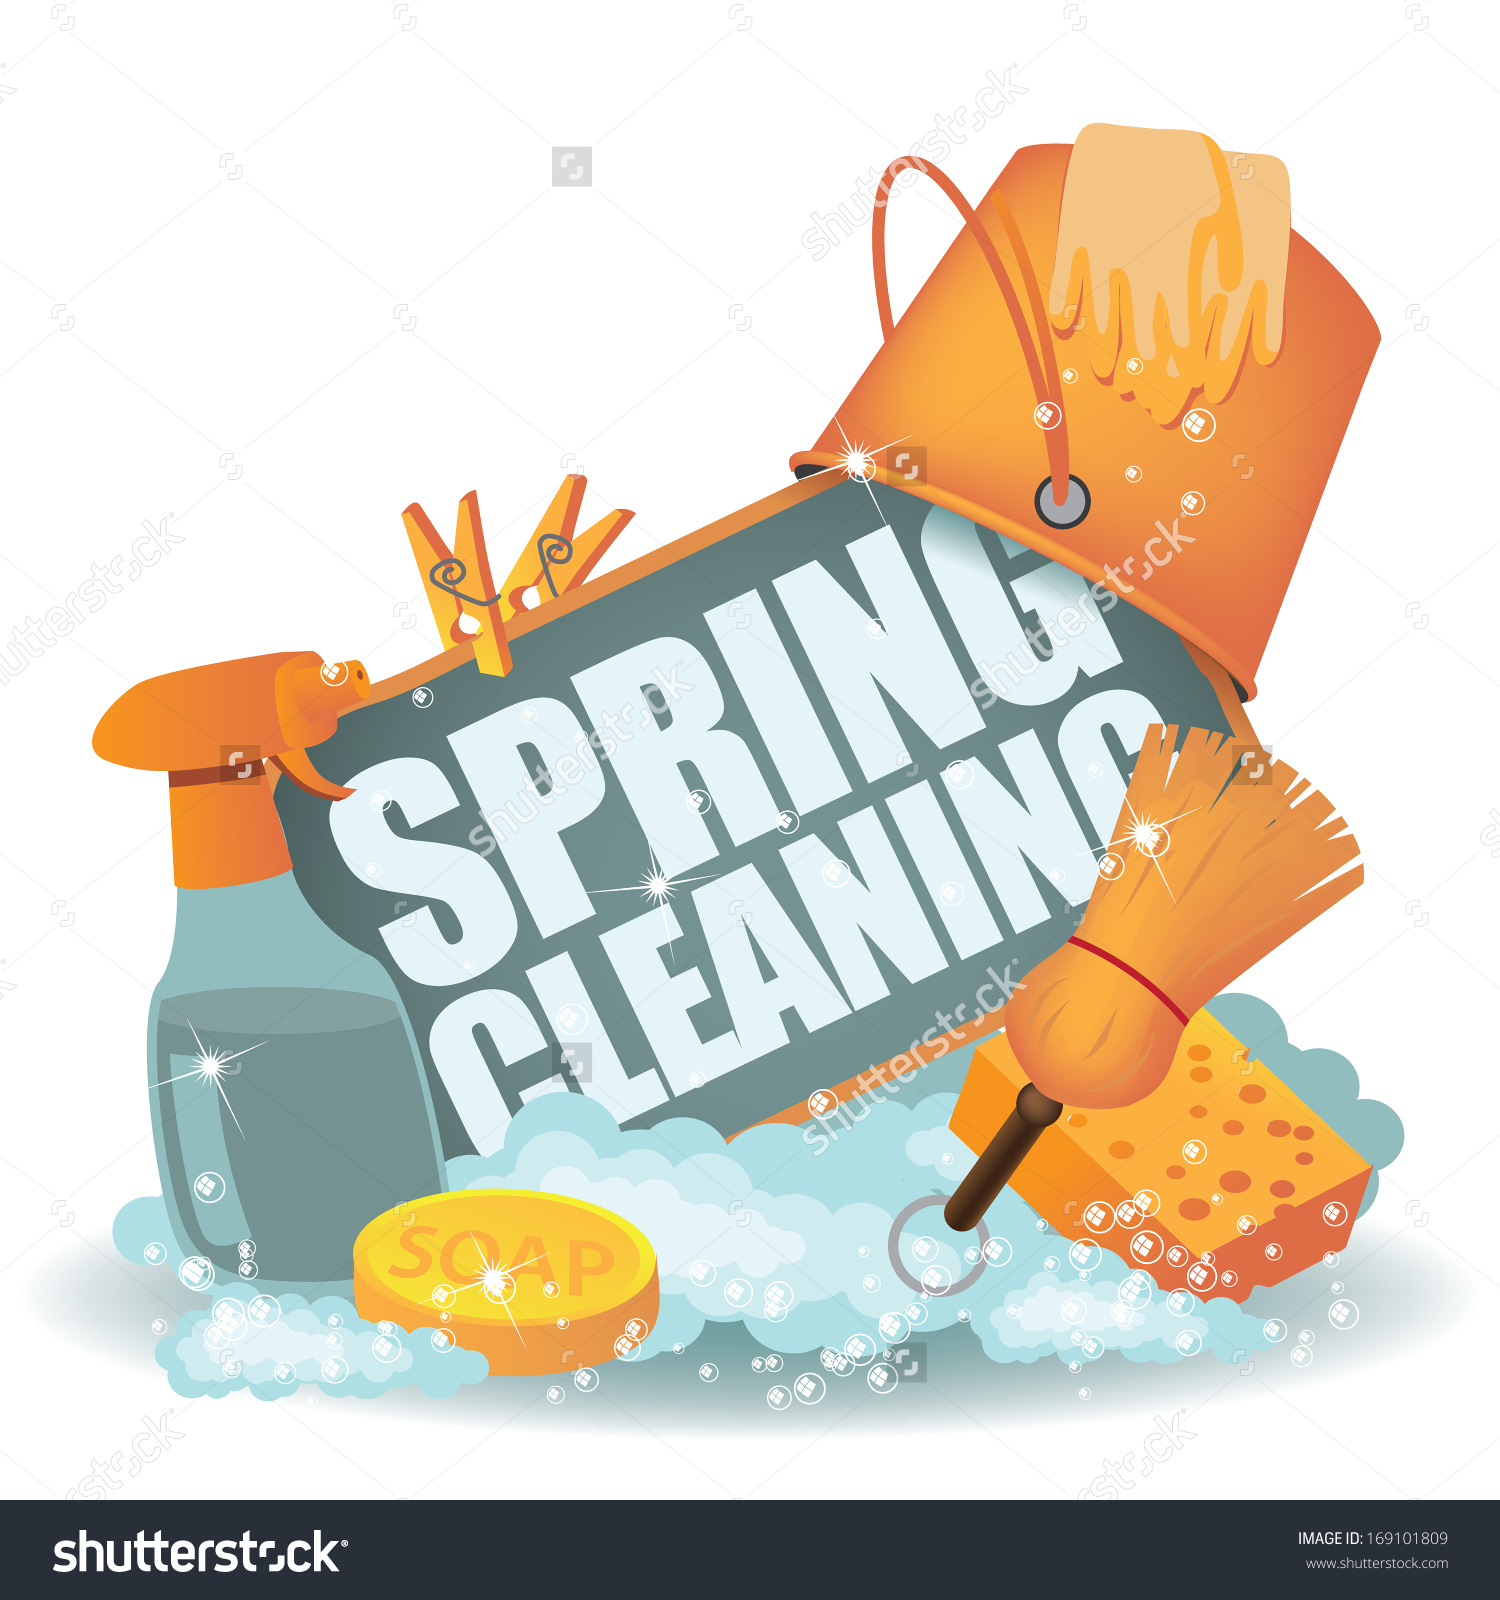 Spring Cleaning Icon. EPS 10 vector, grouped for easy editing. No open shapes